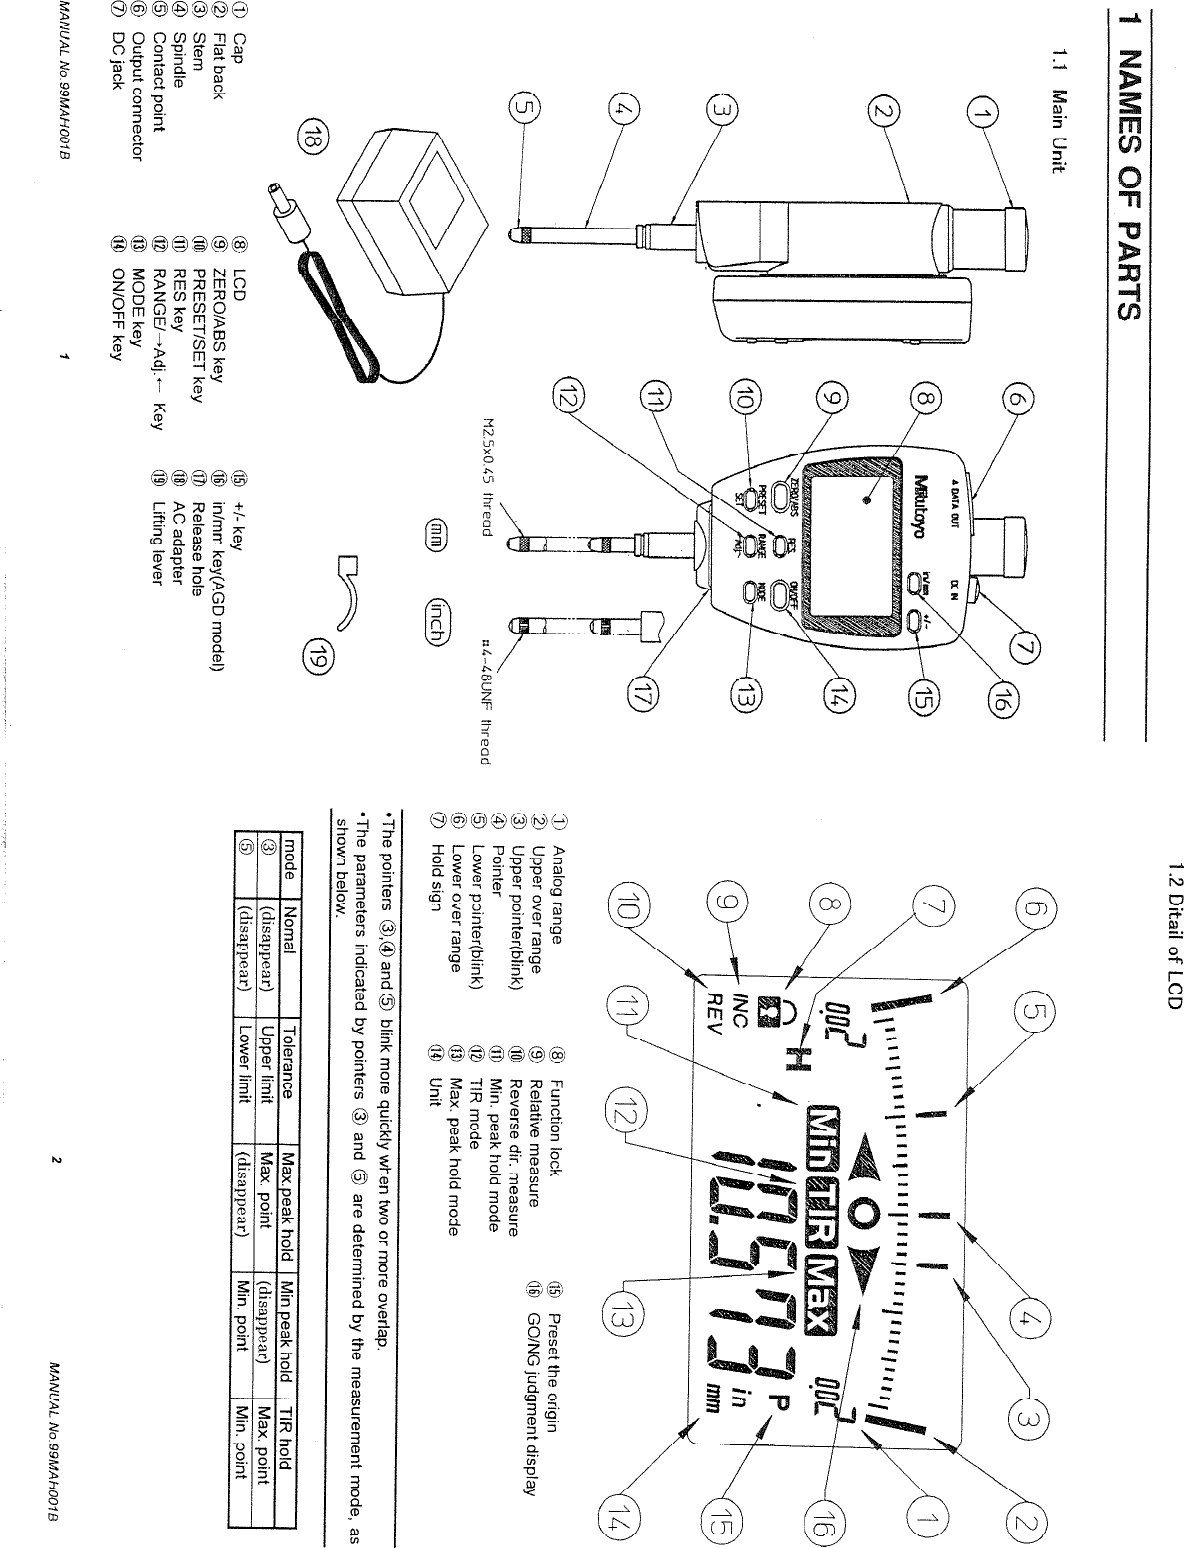 Mitutoyo Microscope And Magnifier Id F125 150 Users Manual